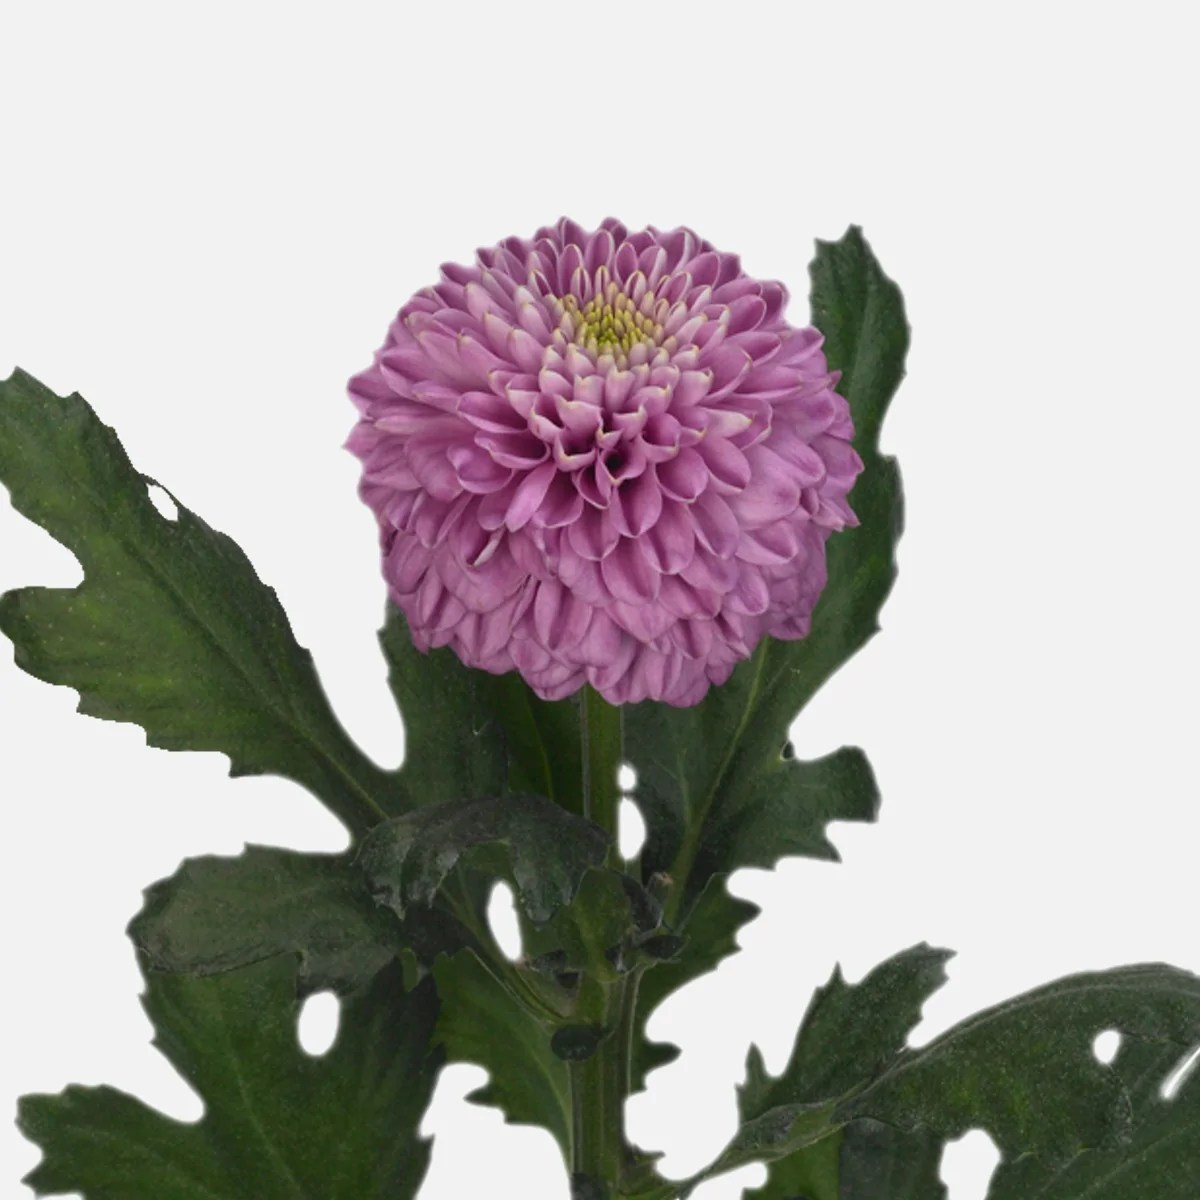 Chrysanthemen Pflege Chrysanthemen Kugel, Hellviolett Schenken – Tom Flowers